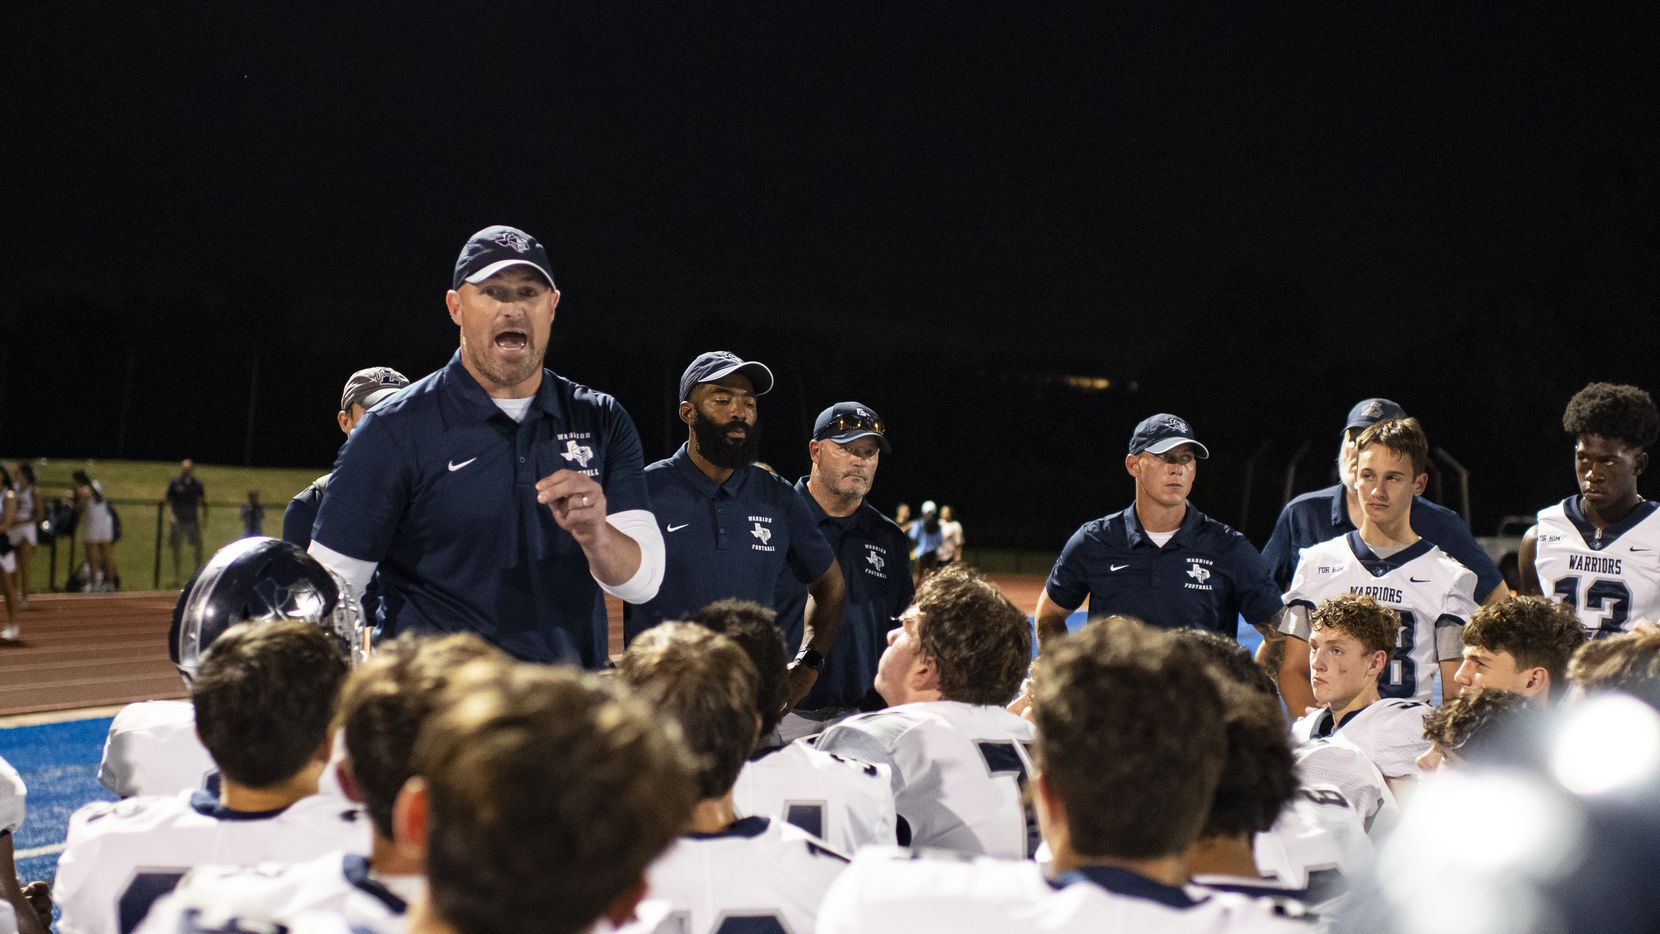 Argyle Liberty Christian Head Coach Jason Witten talks to his players at the conclusion of Parish Episcopal's home game against Argyle Liberty Christian at Gloria Snyder Stadium on Friday, September 17, 2021 in Dallas, Texas.  Parish Episcopal won the game by a final of 45-14.